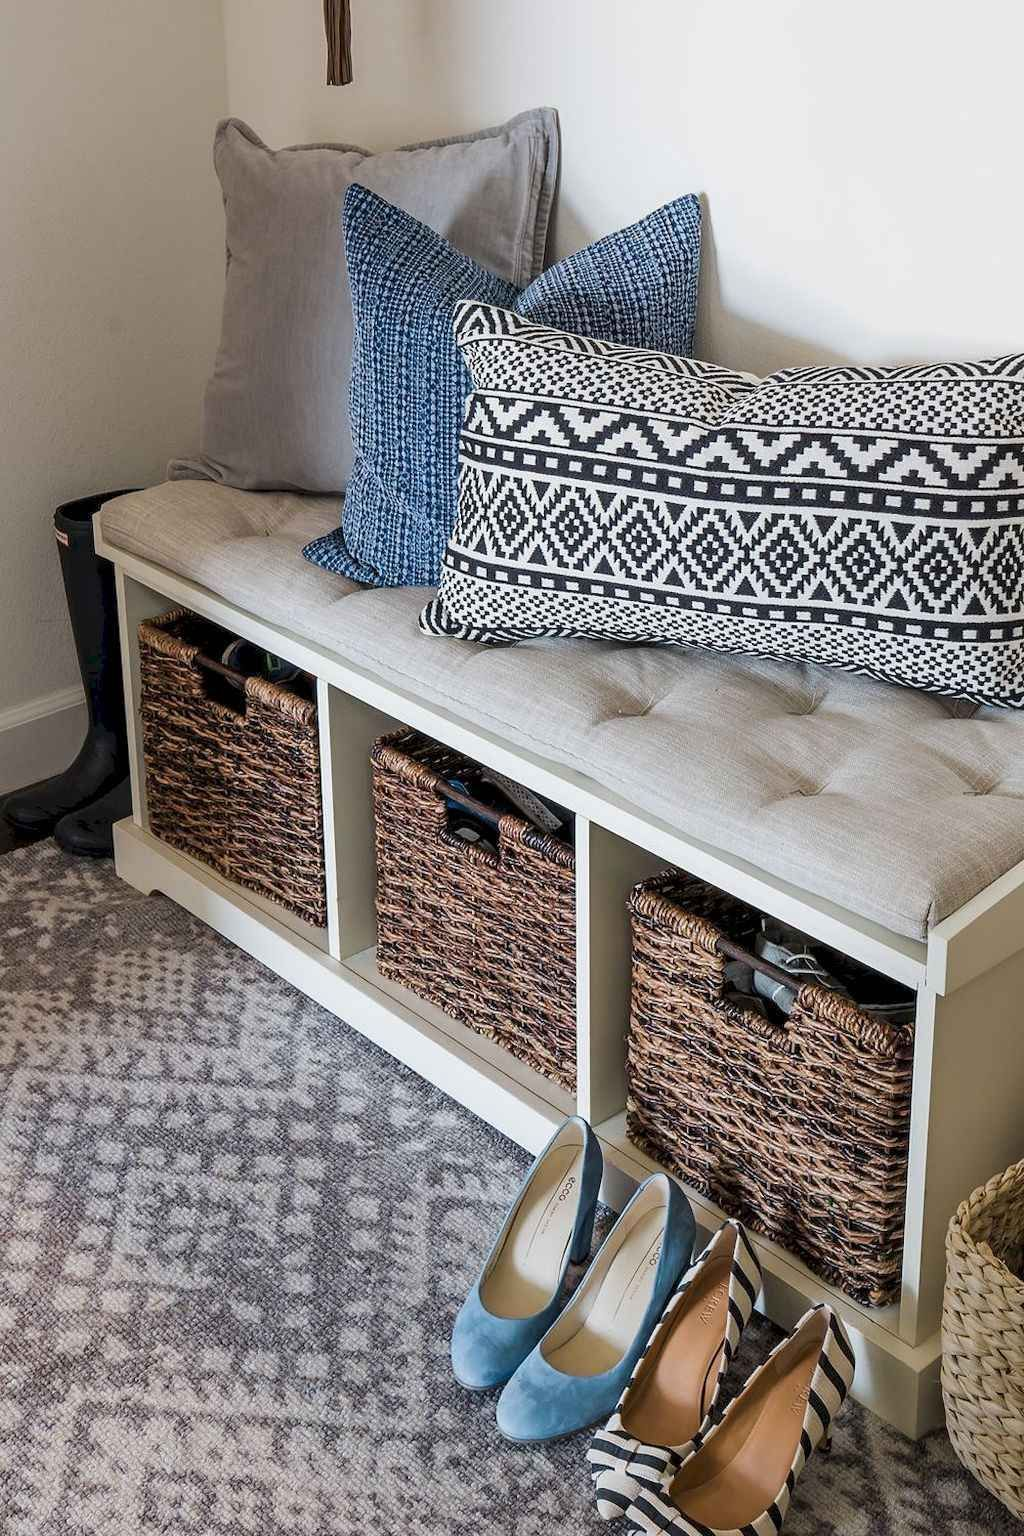 75 Diy Eingangsbereich Mudroom Bench Makeover Ideen Bench Diy Eingangsbereich Ideen Makeove In 2020 Bench With Shoe Storage Diy Storage Bench Pottery Barn Entryway